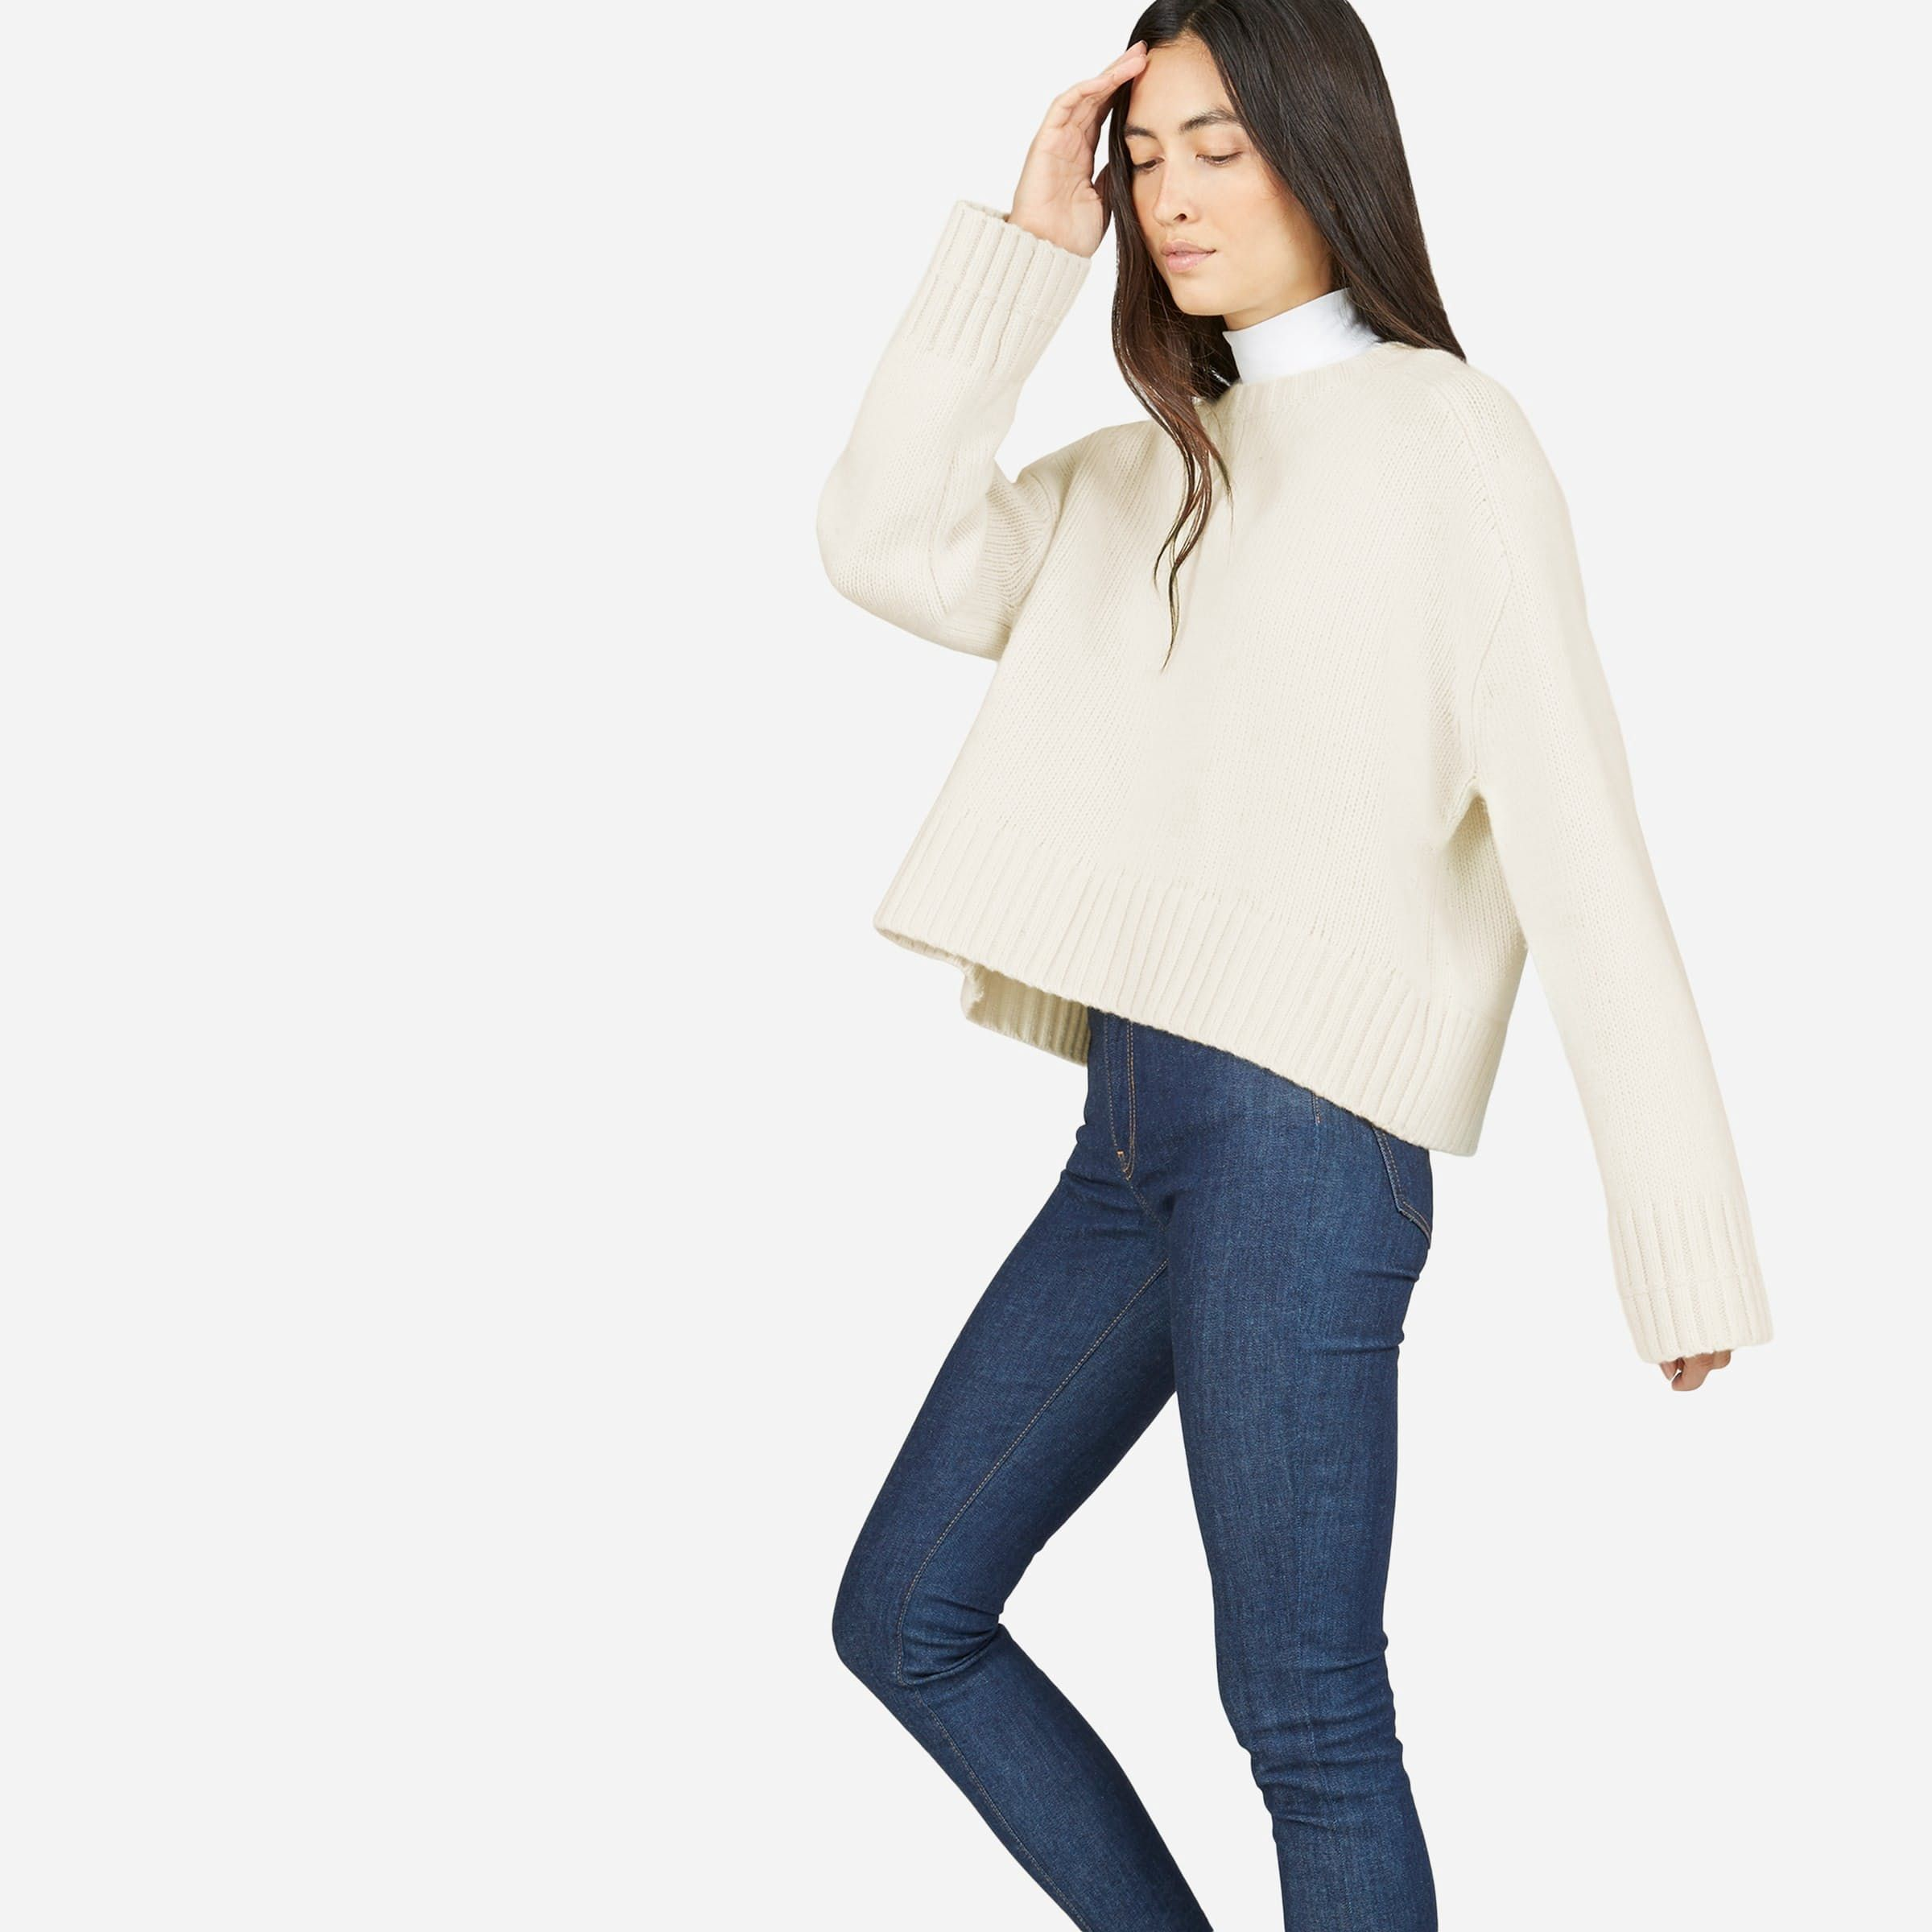 The Wool-Cashmere Square Crew - Ivory by Everlane $130